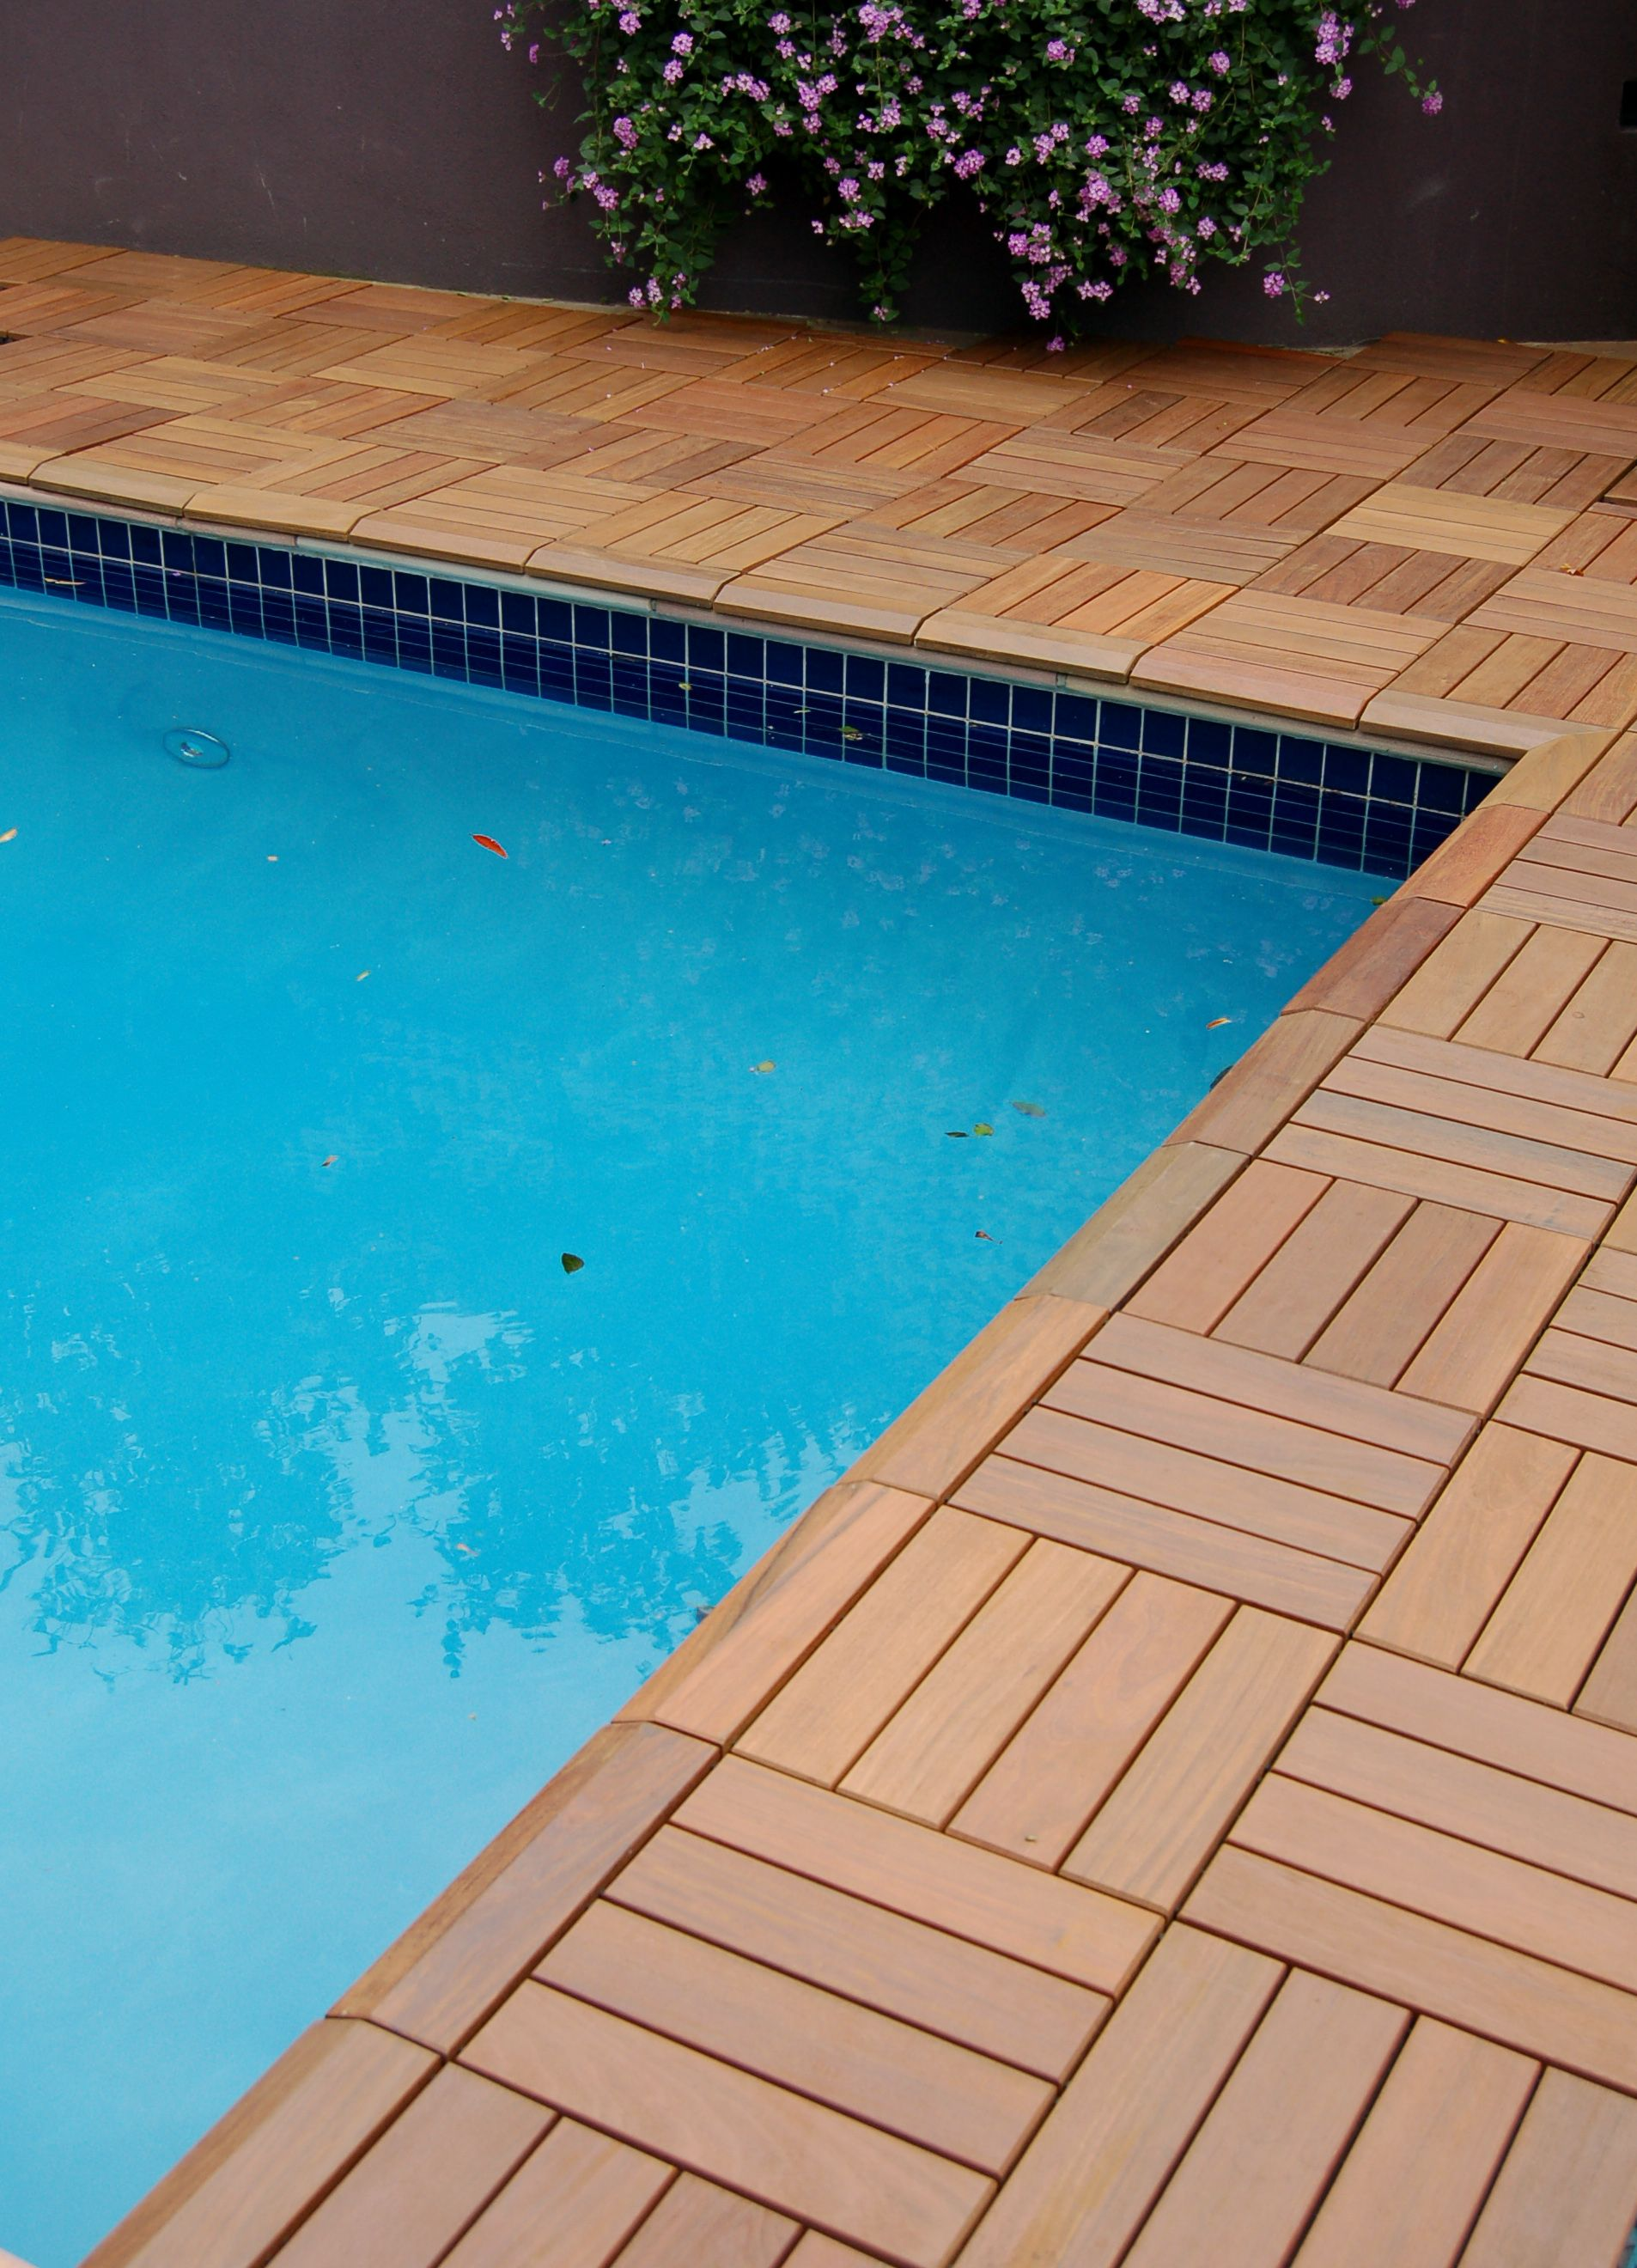 SwiftDeck wood patio tiles right to the pool edge